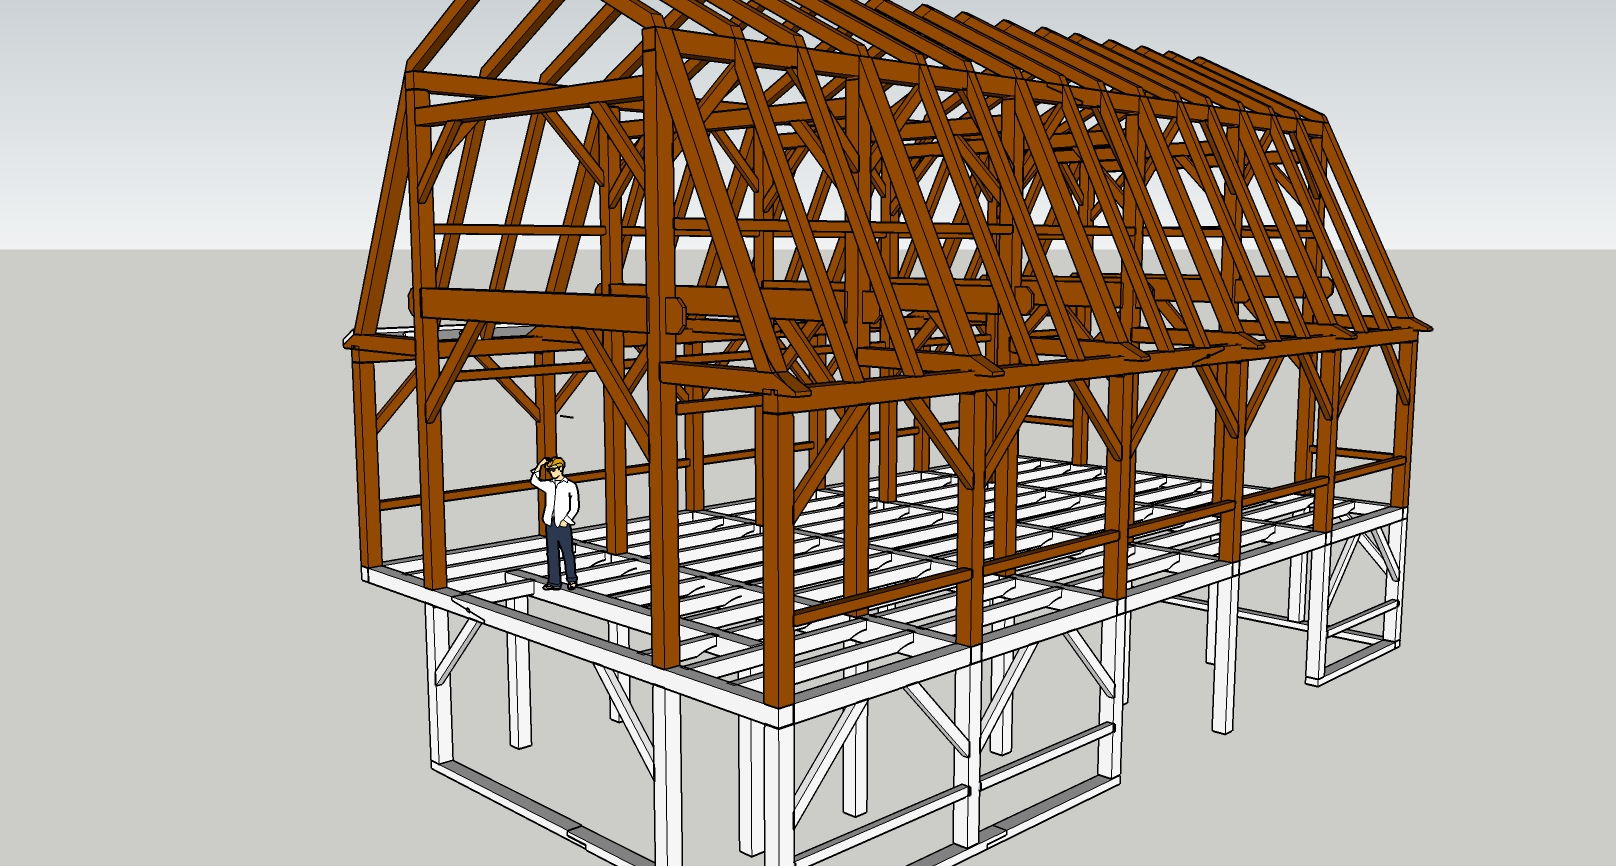 Timber frame barn design by Uncarved Block